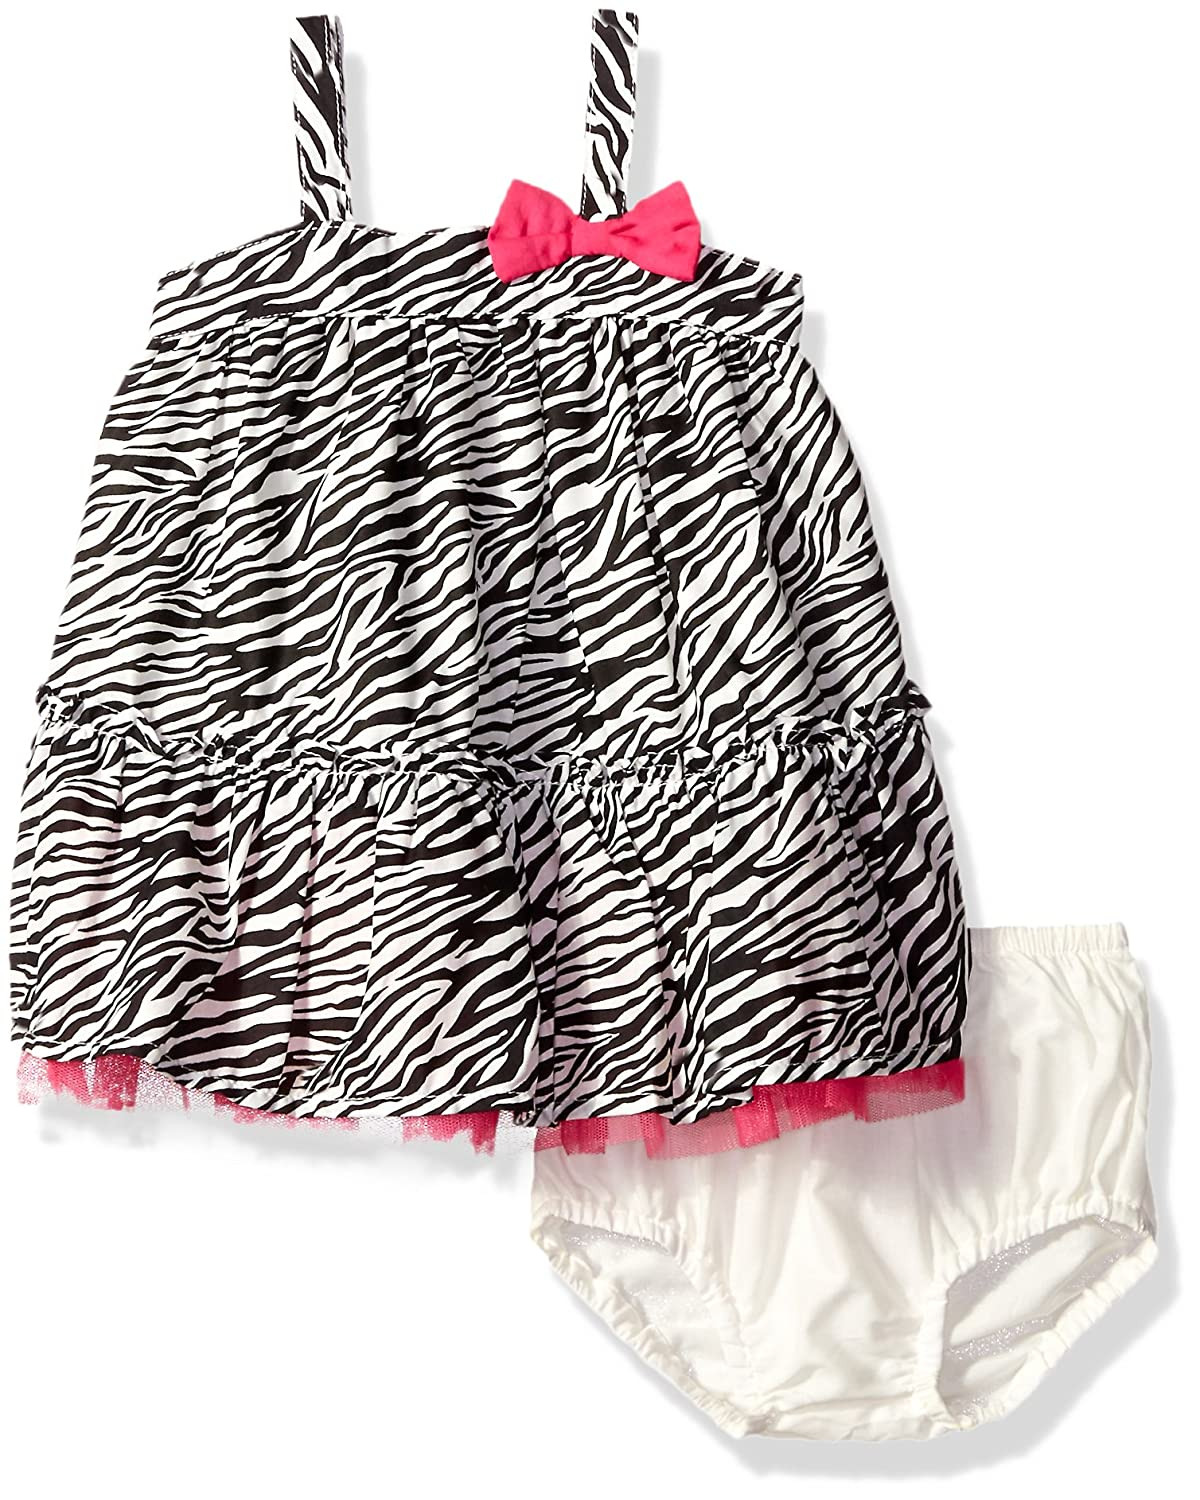 340a6c1383d54 The Children's Place Girls' Zebra Dress, Snow, 9-12 Months: Amazon.in:  Clothing & Accessories